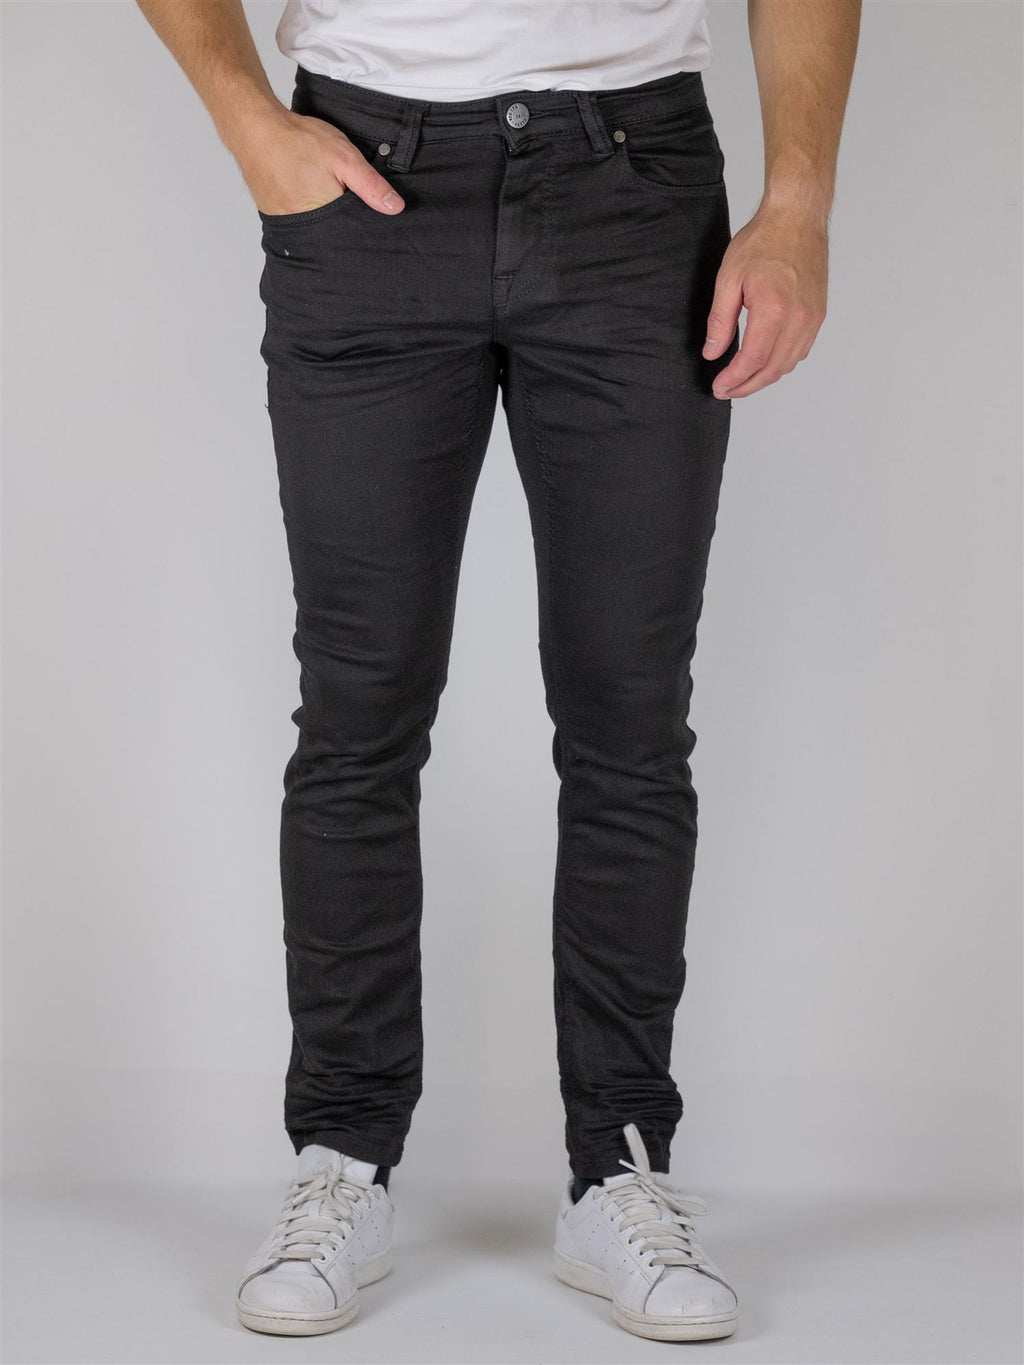 Jones Flex Jeans K1911 - Black